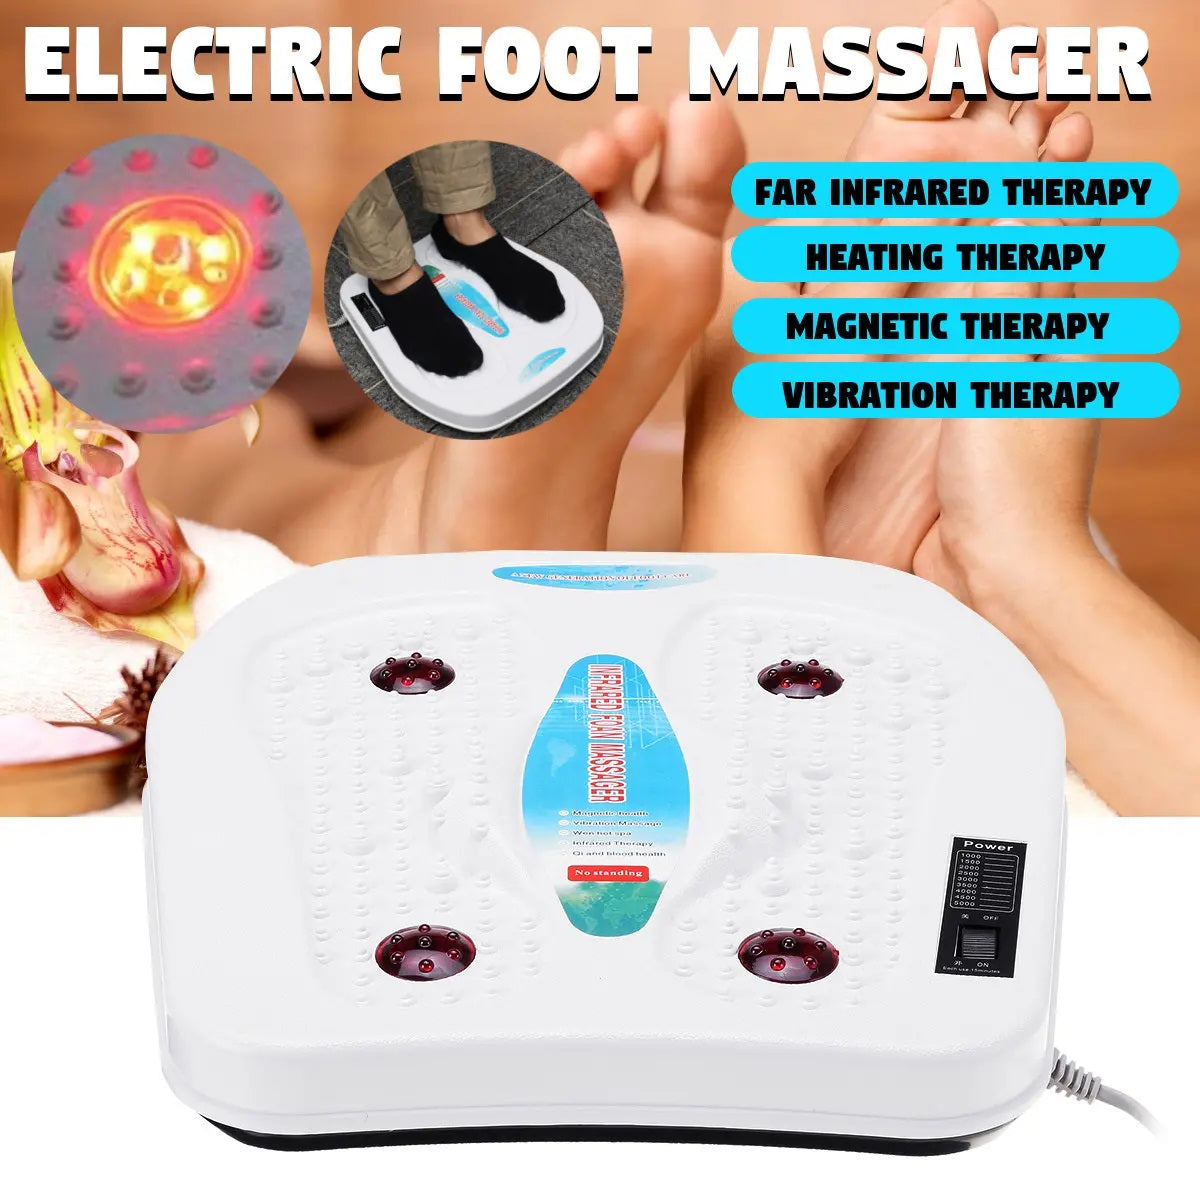 Electric Foot Massager Vibration Magnetic Heating  Infra-red Therapy Health Machine - Relieves foot pain